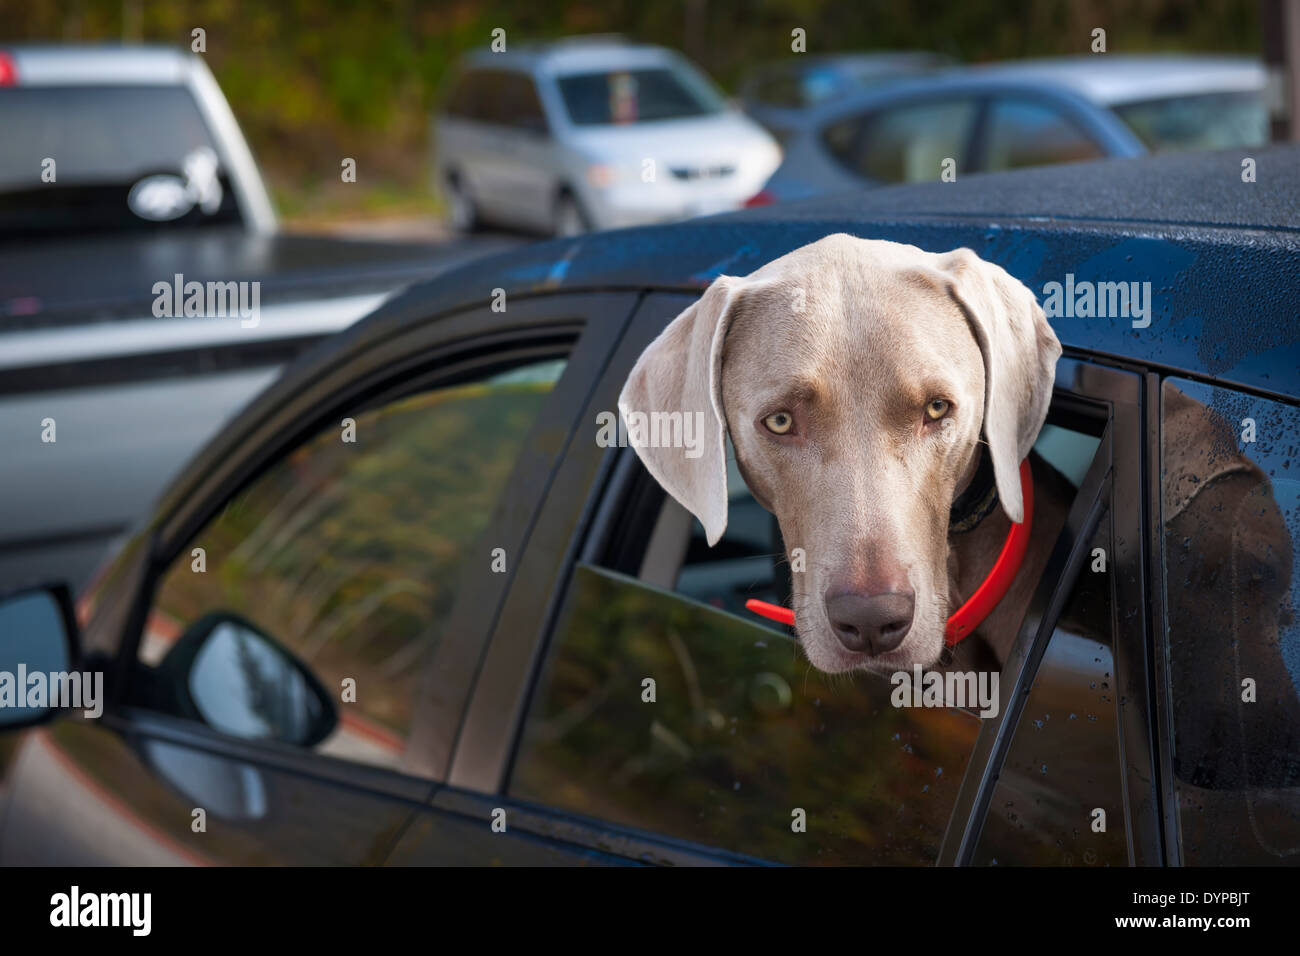 One weimaraner dog looking out of car window in parking lot - Stock Image